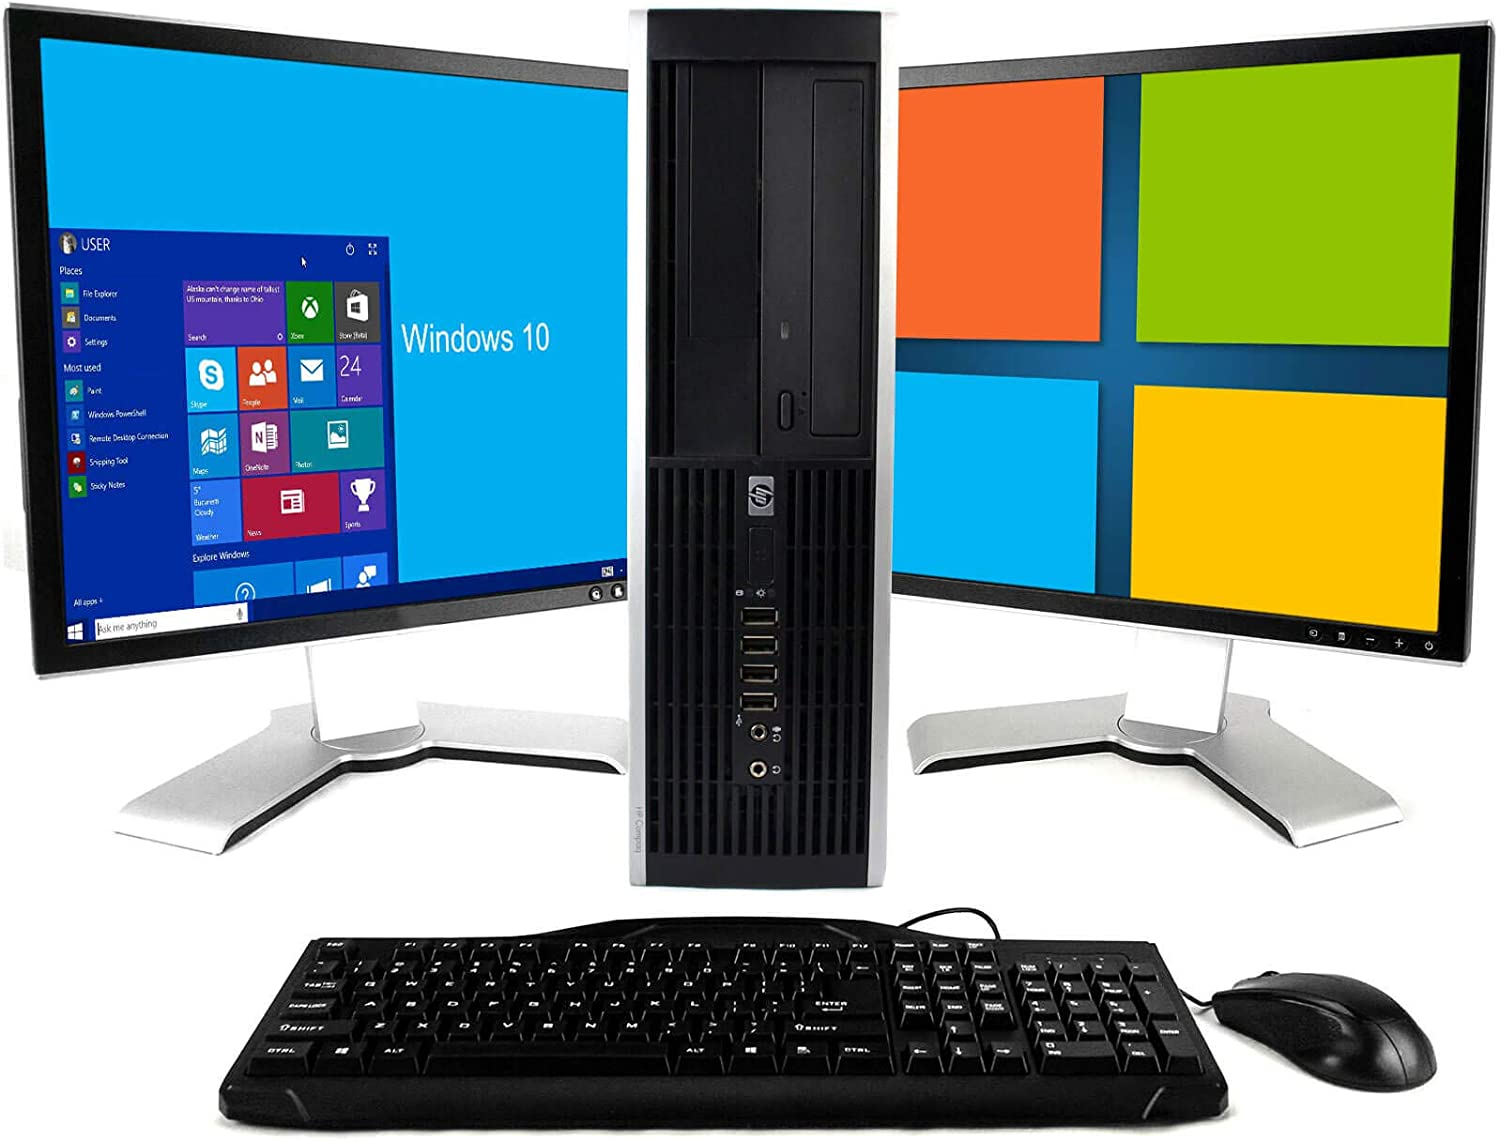 HP Elite Windows 10 Home Desktop Computer 250GB Dual 19 LCD Monitor - (Brands will vary)